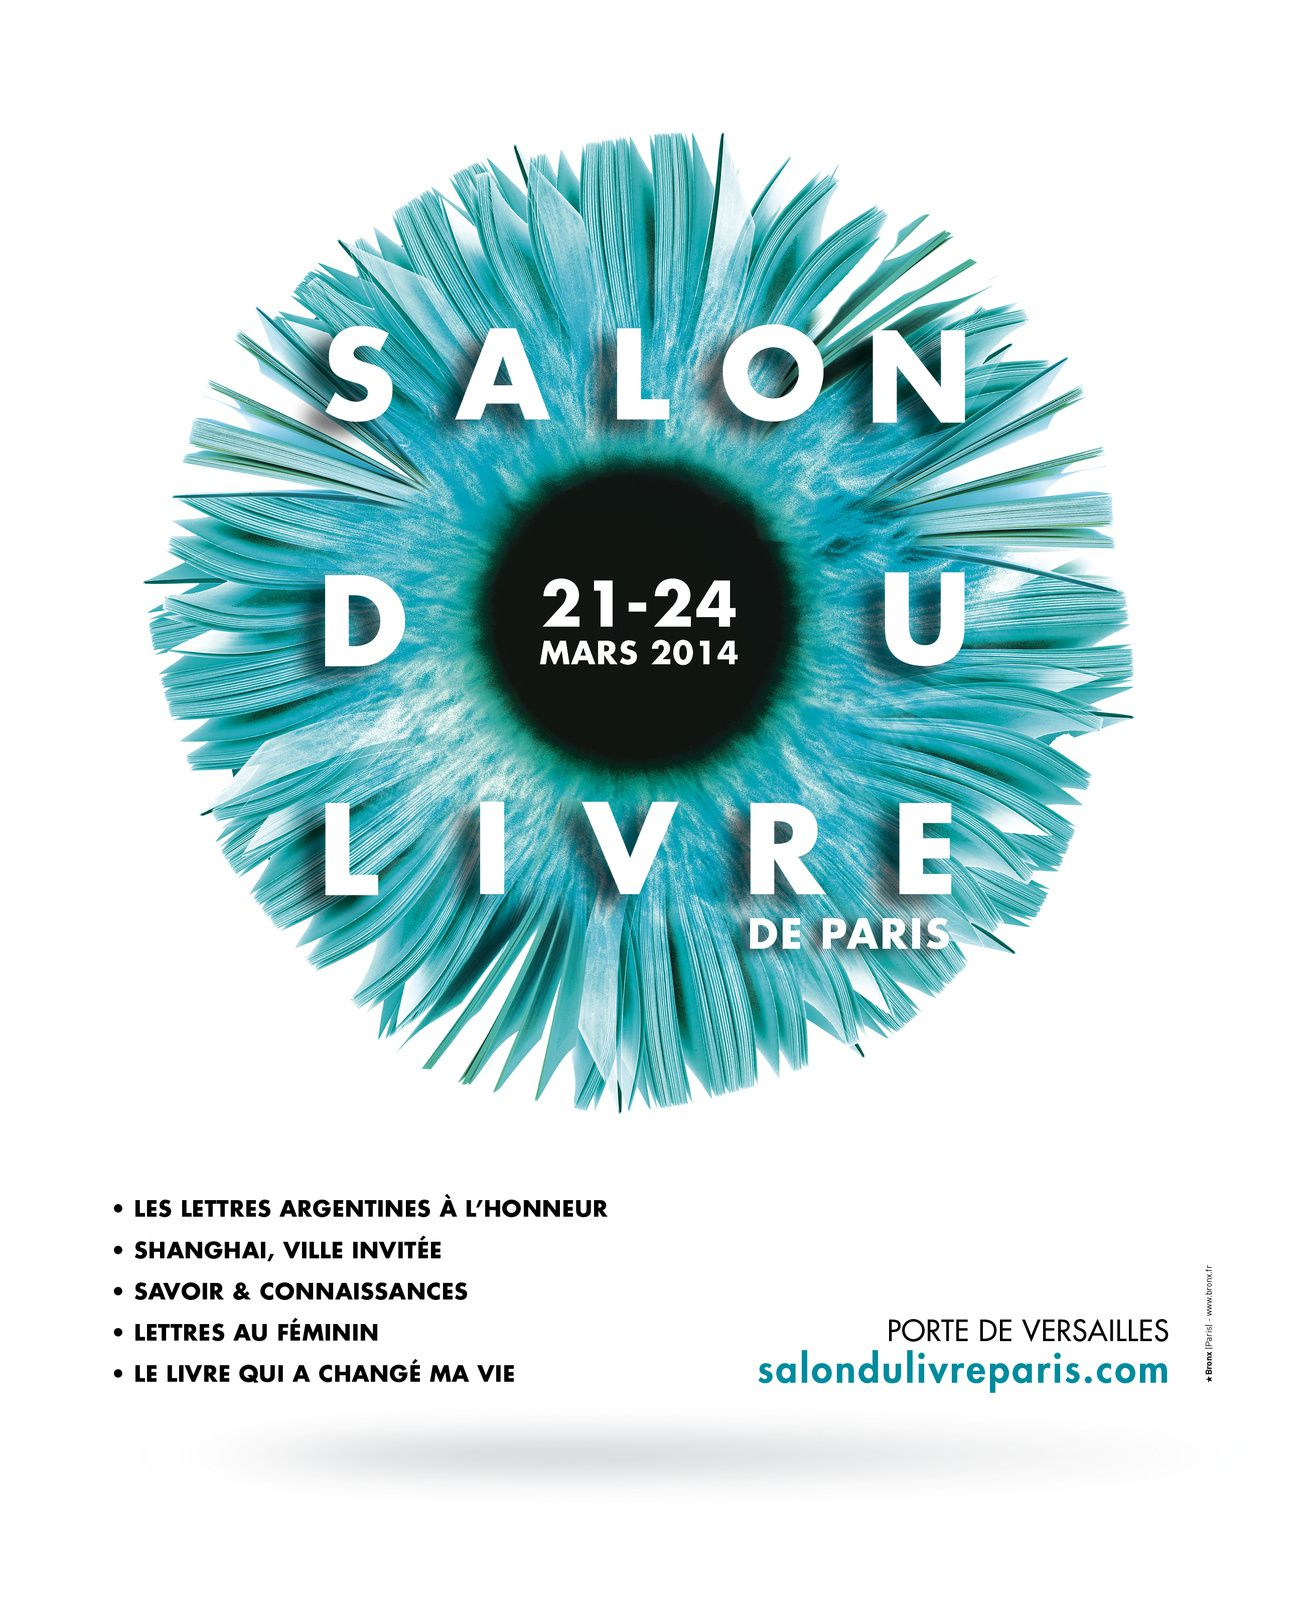 Salon du livre 2014 (giveaway inside)